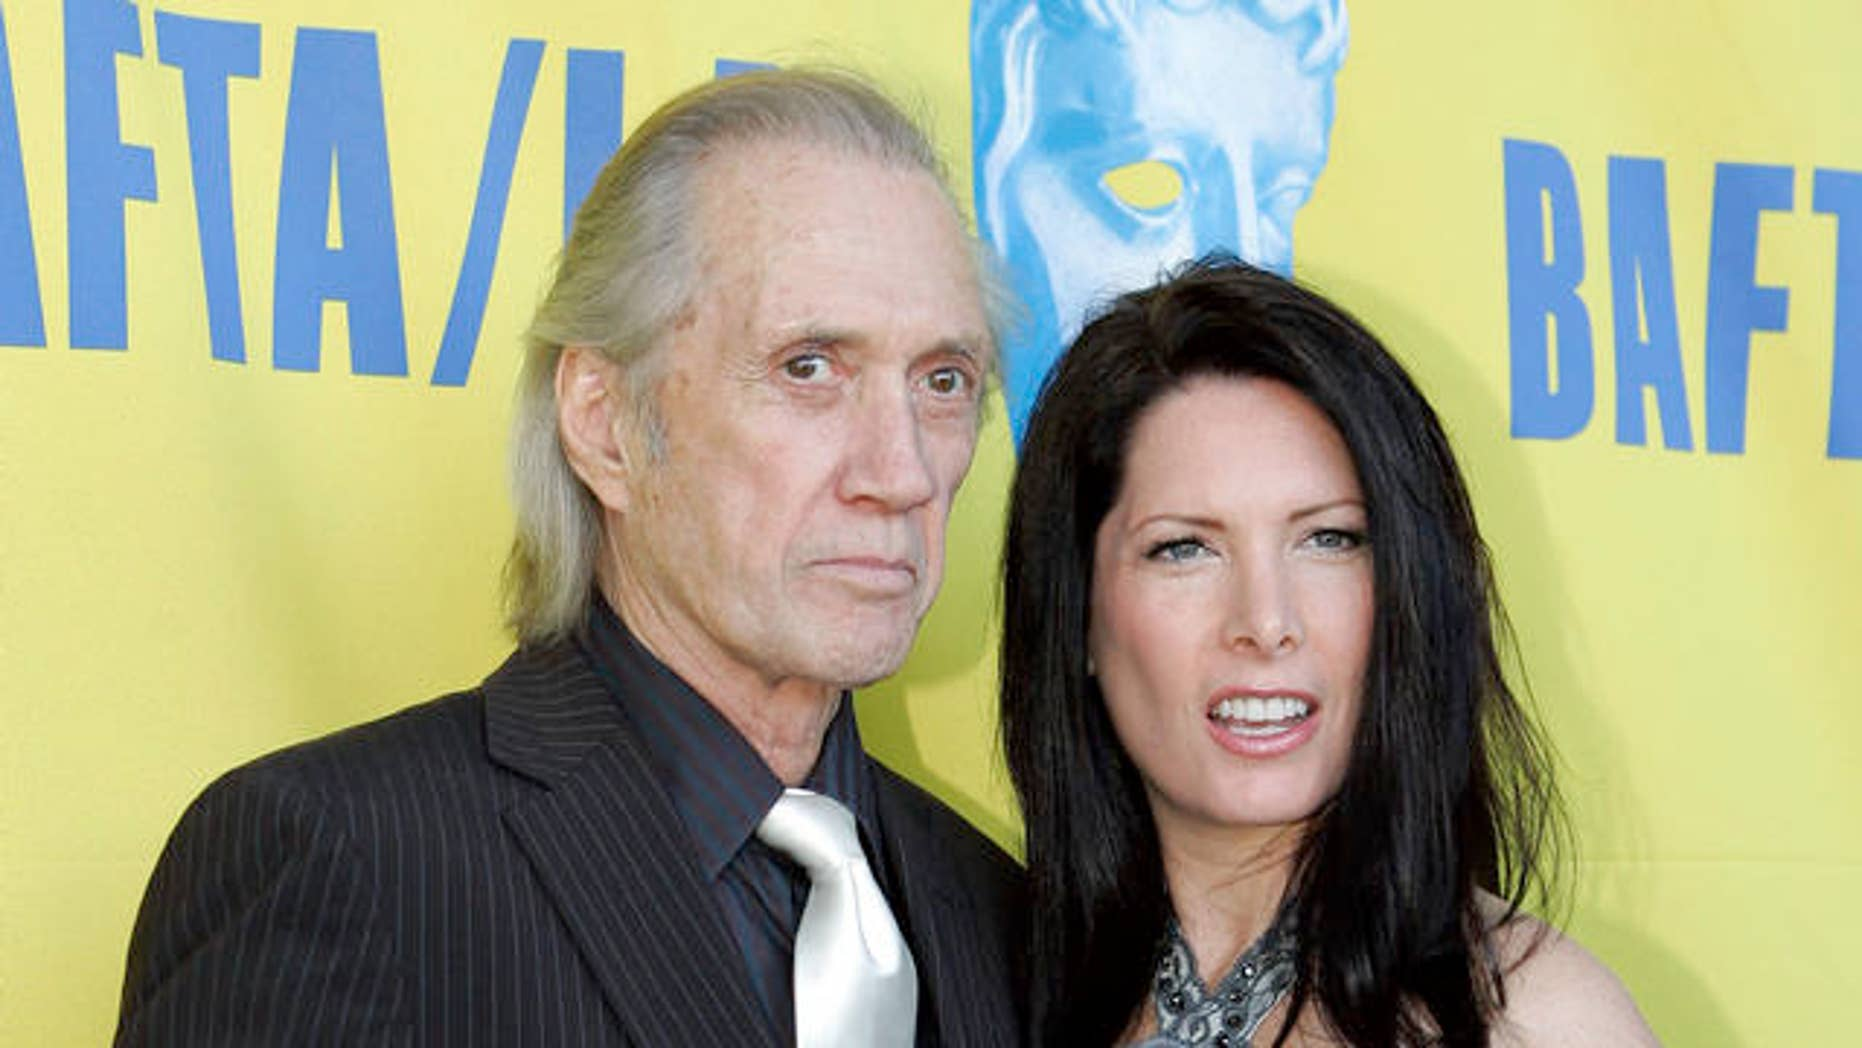 FILE: David Carradine and Annie Bierman in 2005 (AP)